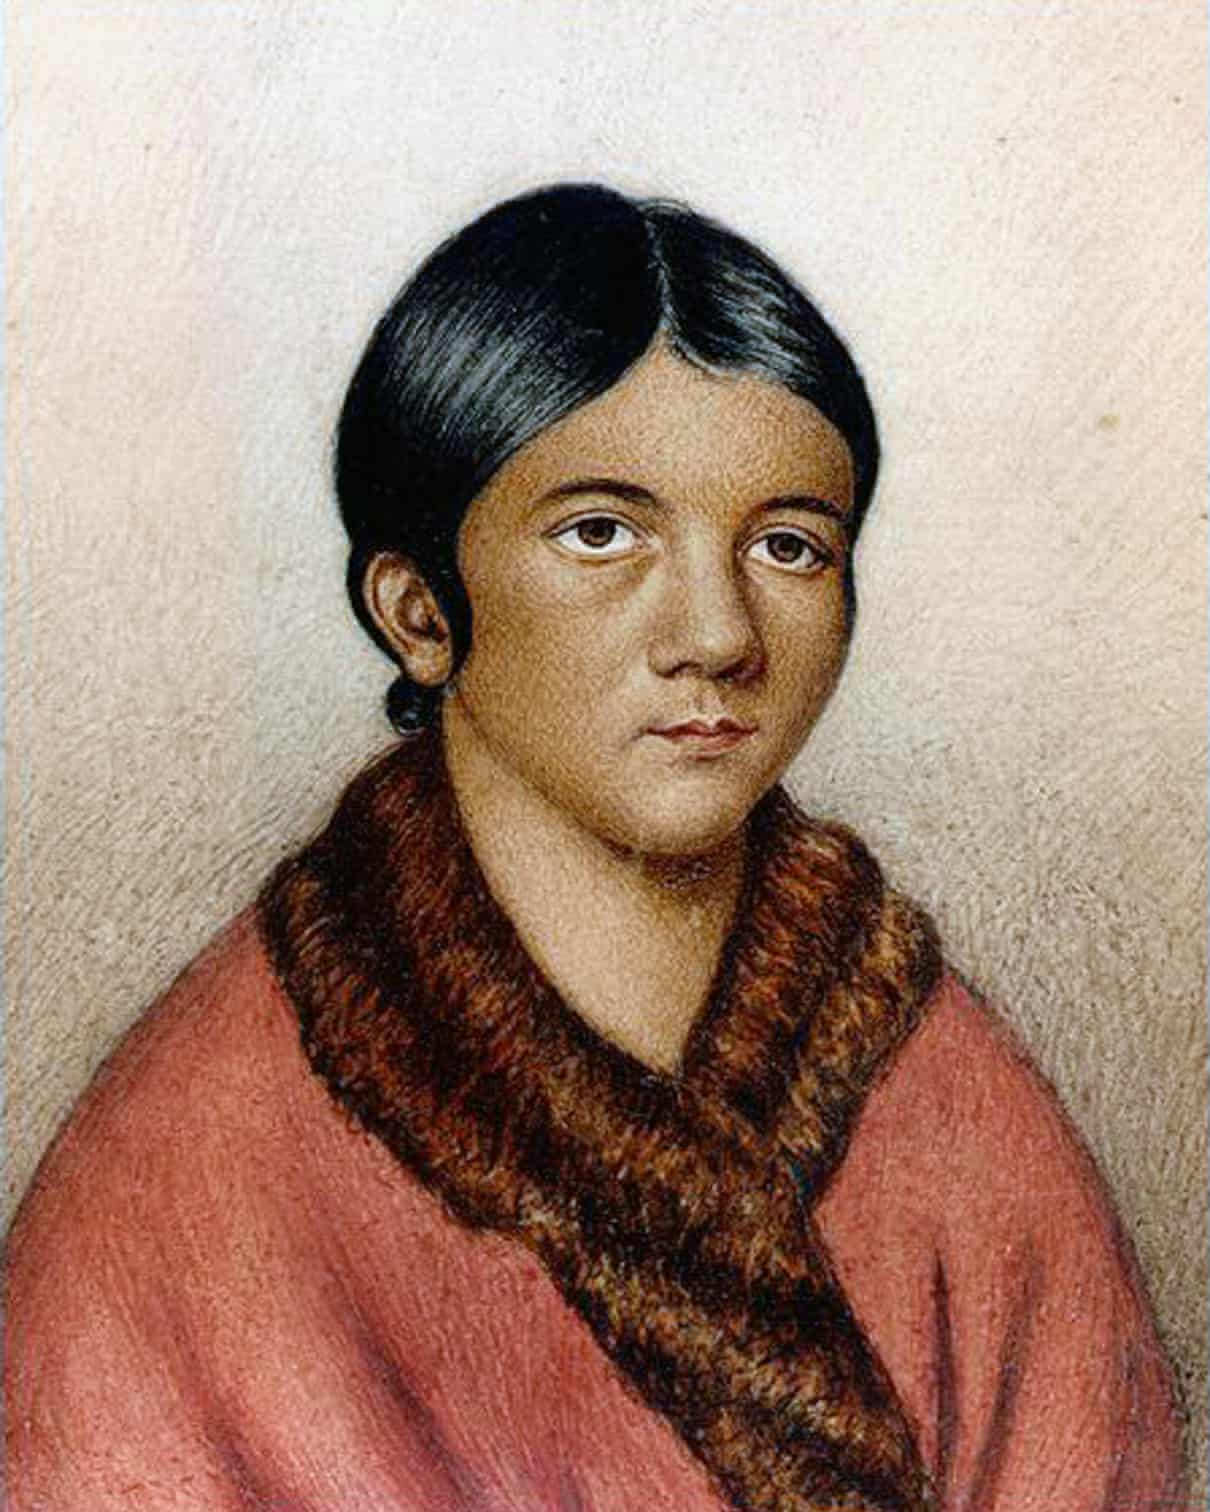 A miniature portrait titled 'A female Red Indian of Newfoundland' which some sources date to 1841. It is believed to be a portrait of Shanawdithit, a Beothuk woman. Most likely a painted copy of Portrait of Demasduit (Mary March), by Lady Henrietta Hamilton (1819.